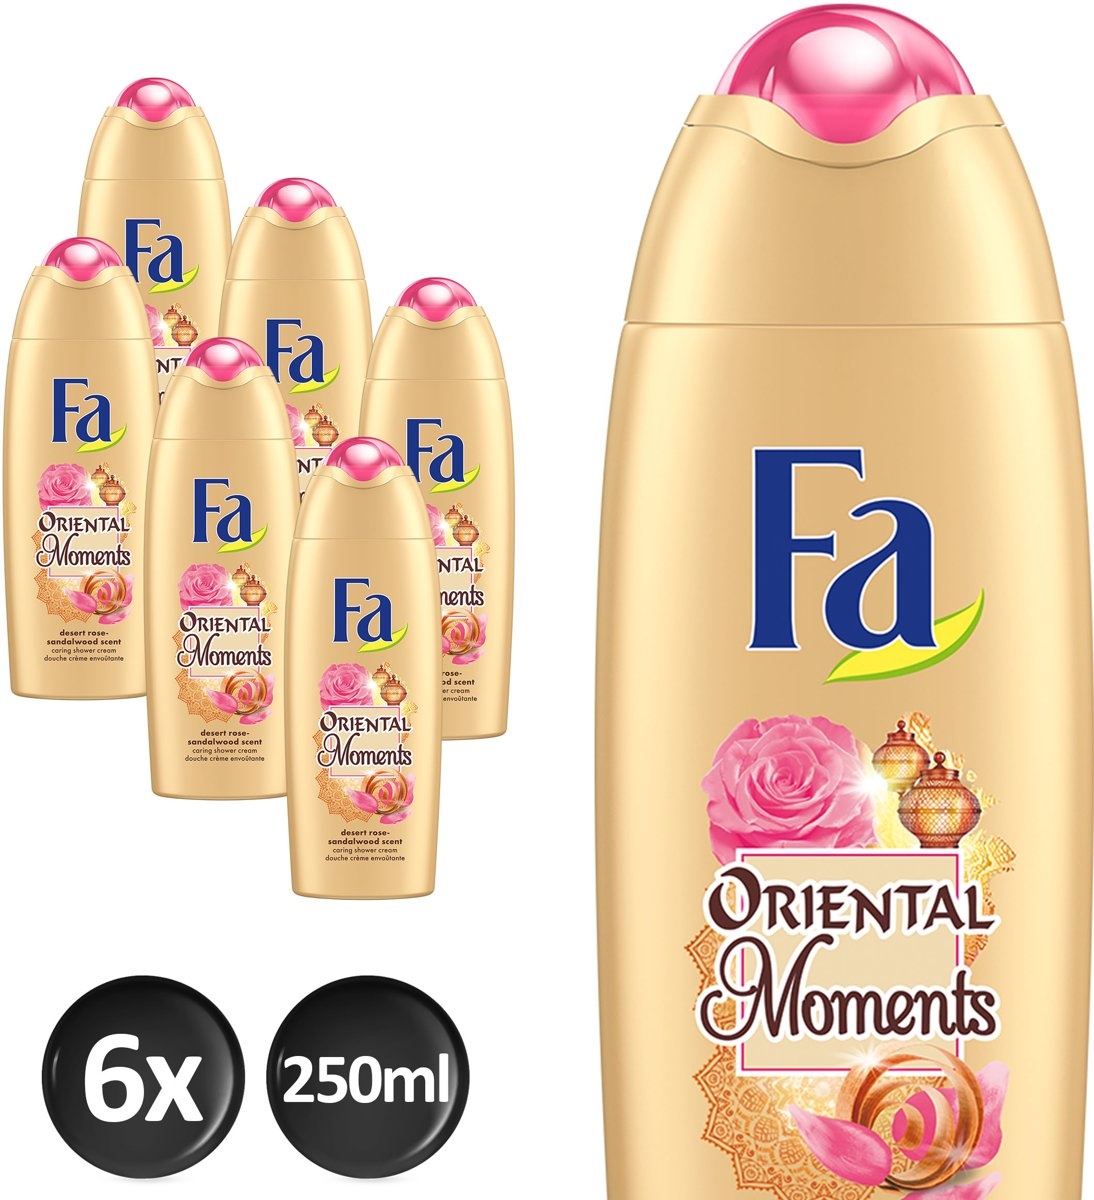 Fa Douchegel Oriental Moments Voordeelverpakking - 6 x 250ml